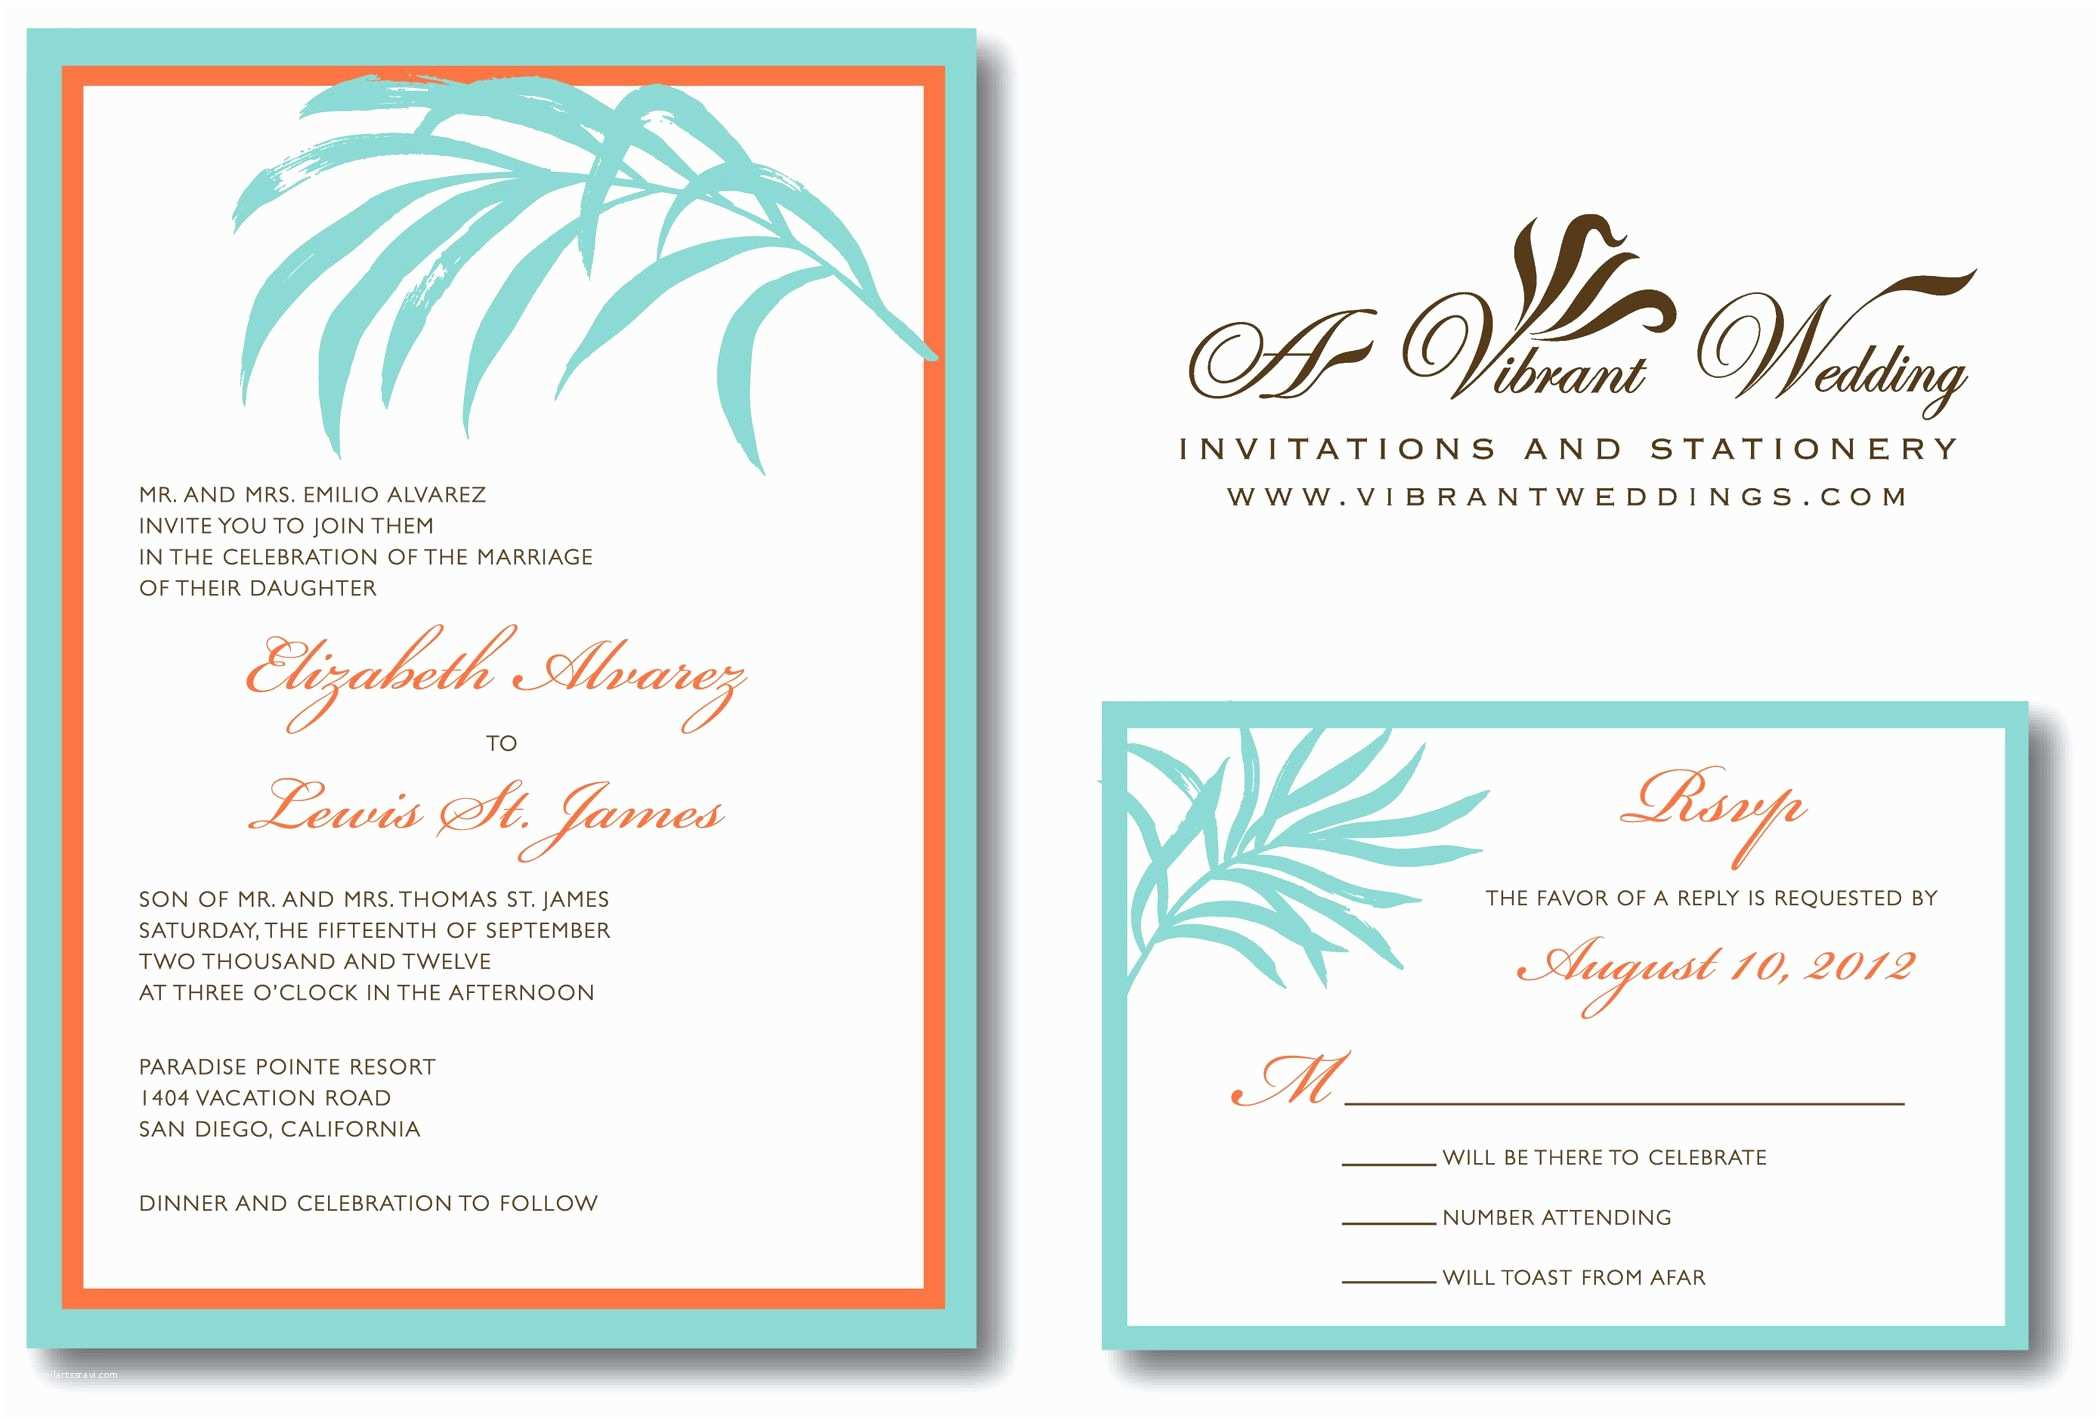 Wedding Invitation Sample Wording Beach Wedding Invitations Wording Beach Wedding